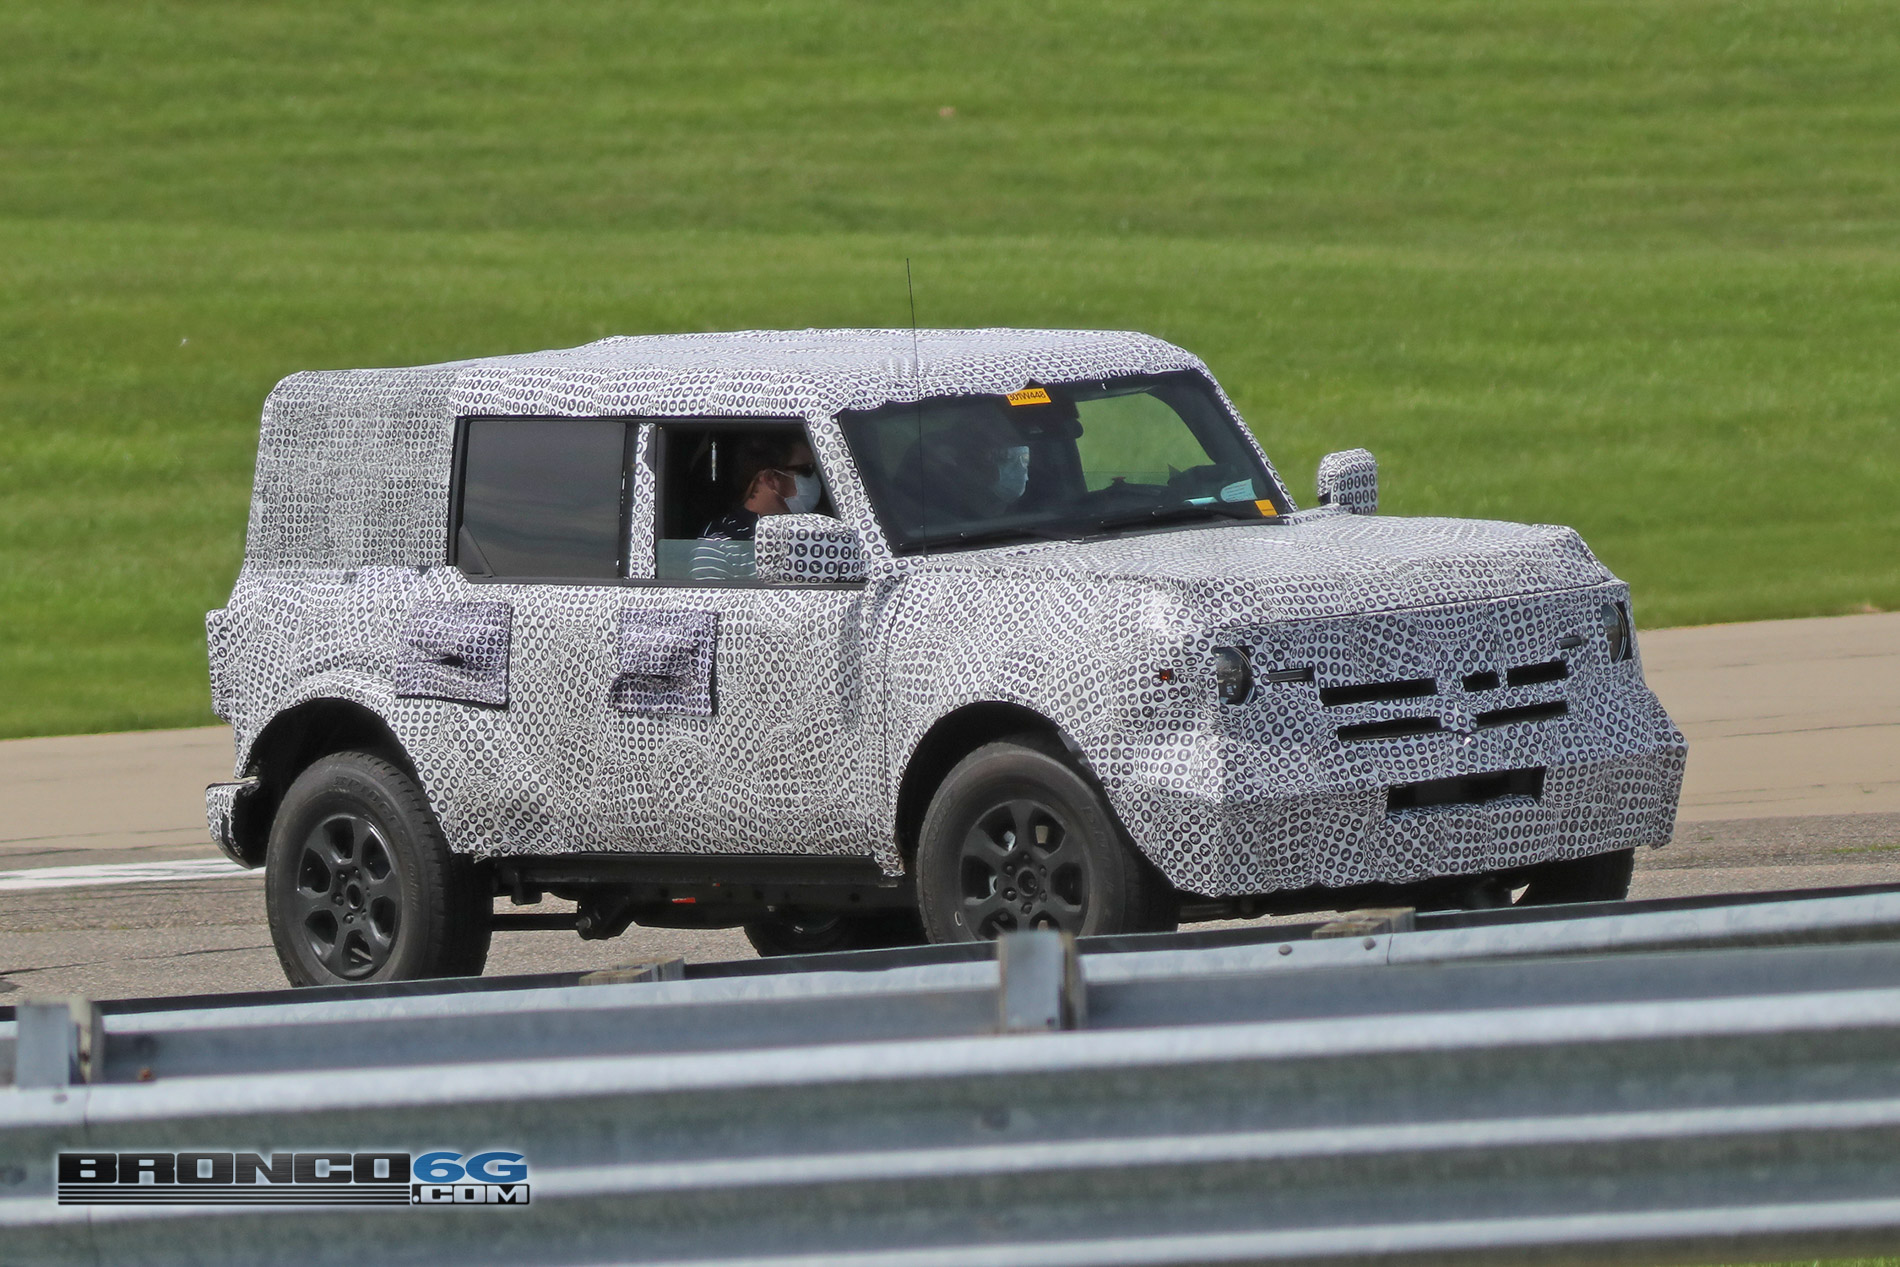 2021 Ford Bronco 4 Door_Less_008.jpg